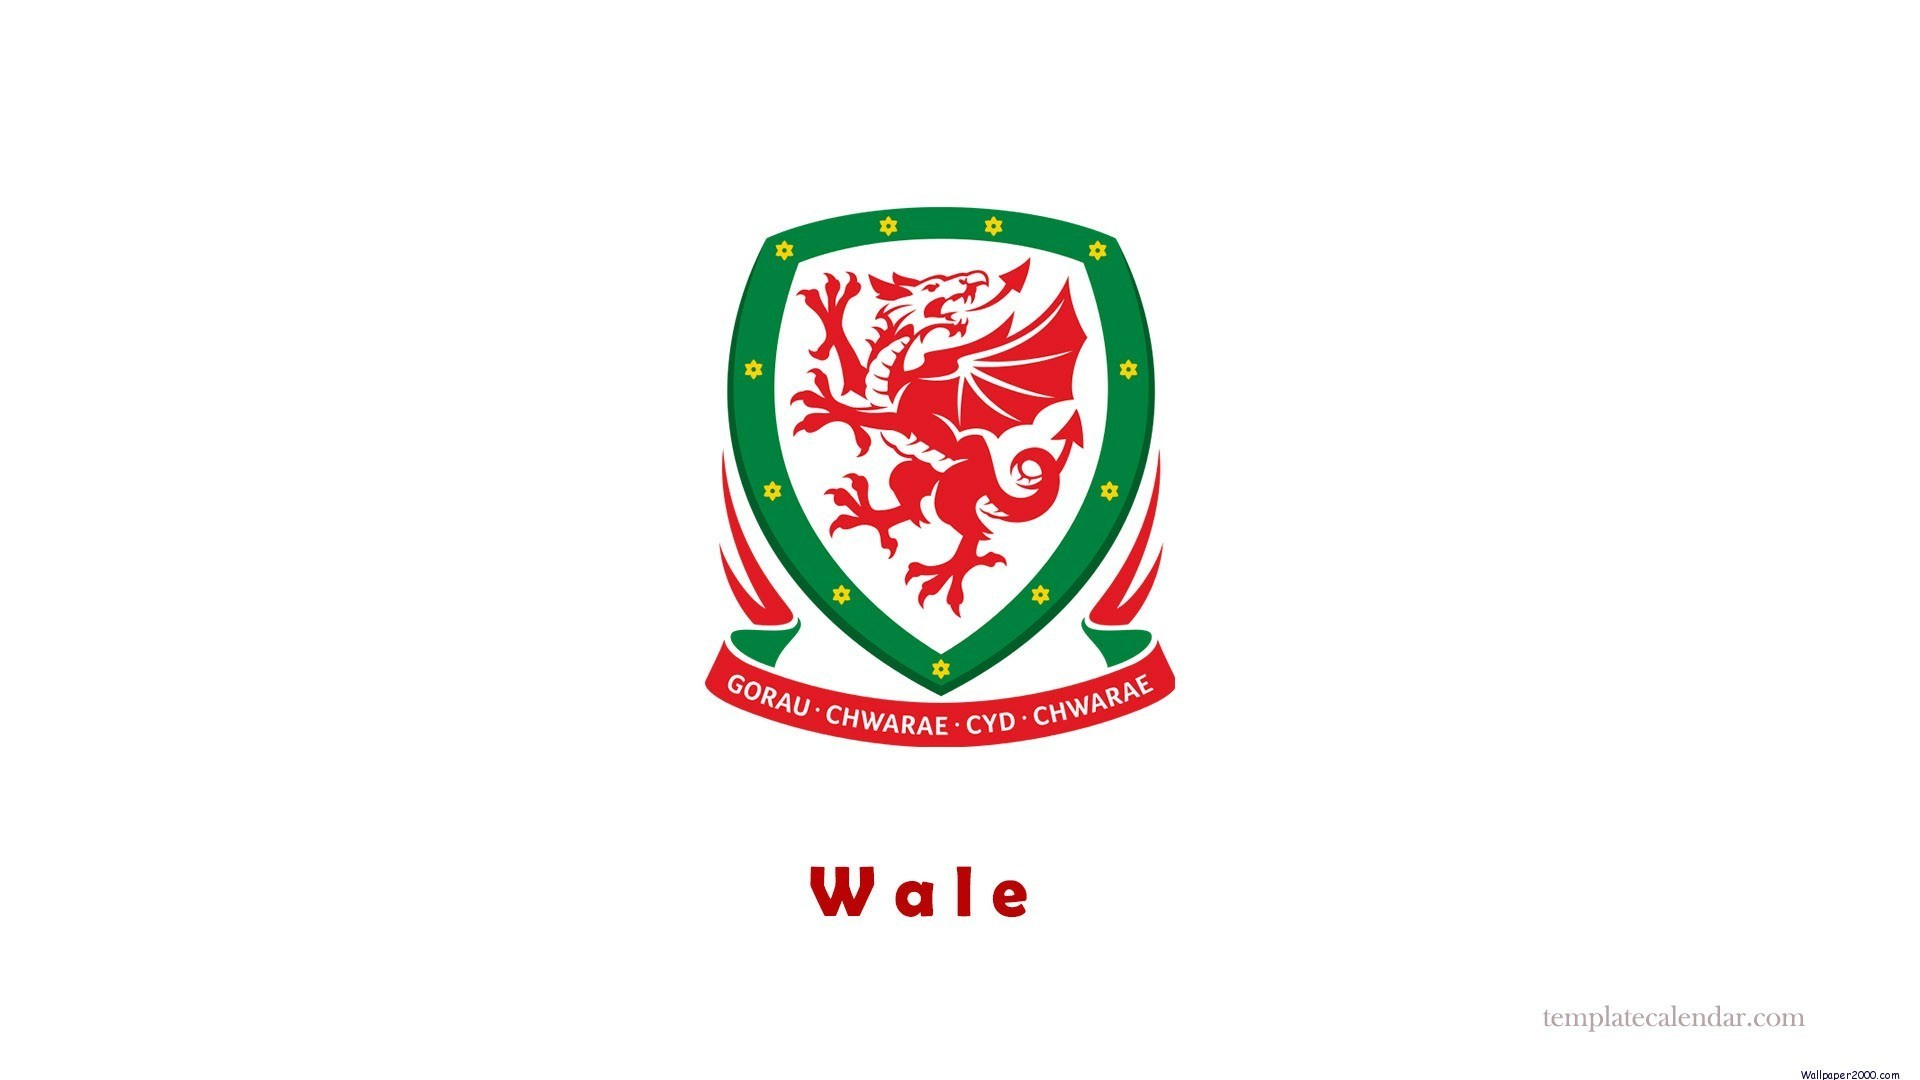 UEFA Euro 2016 Wales wallpaper   HD Wallpaper 1920x1080